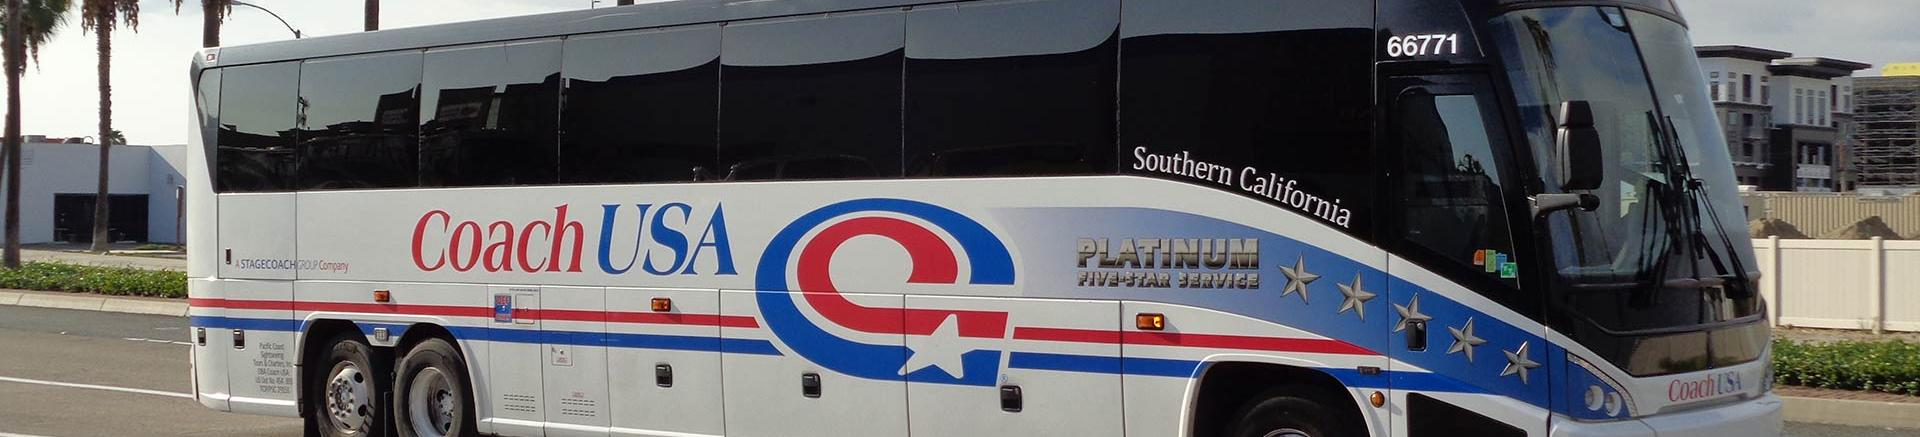 Sports Charter Bus Rental